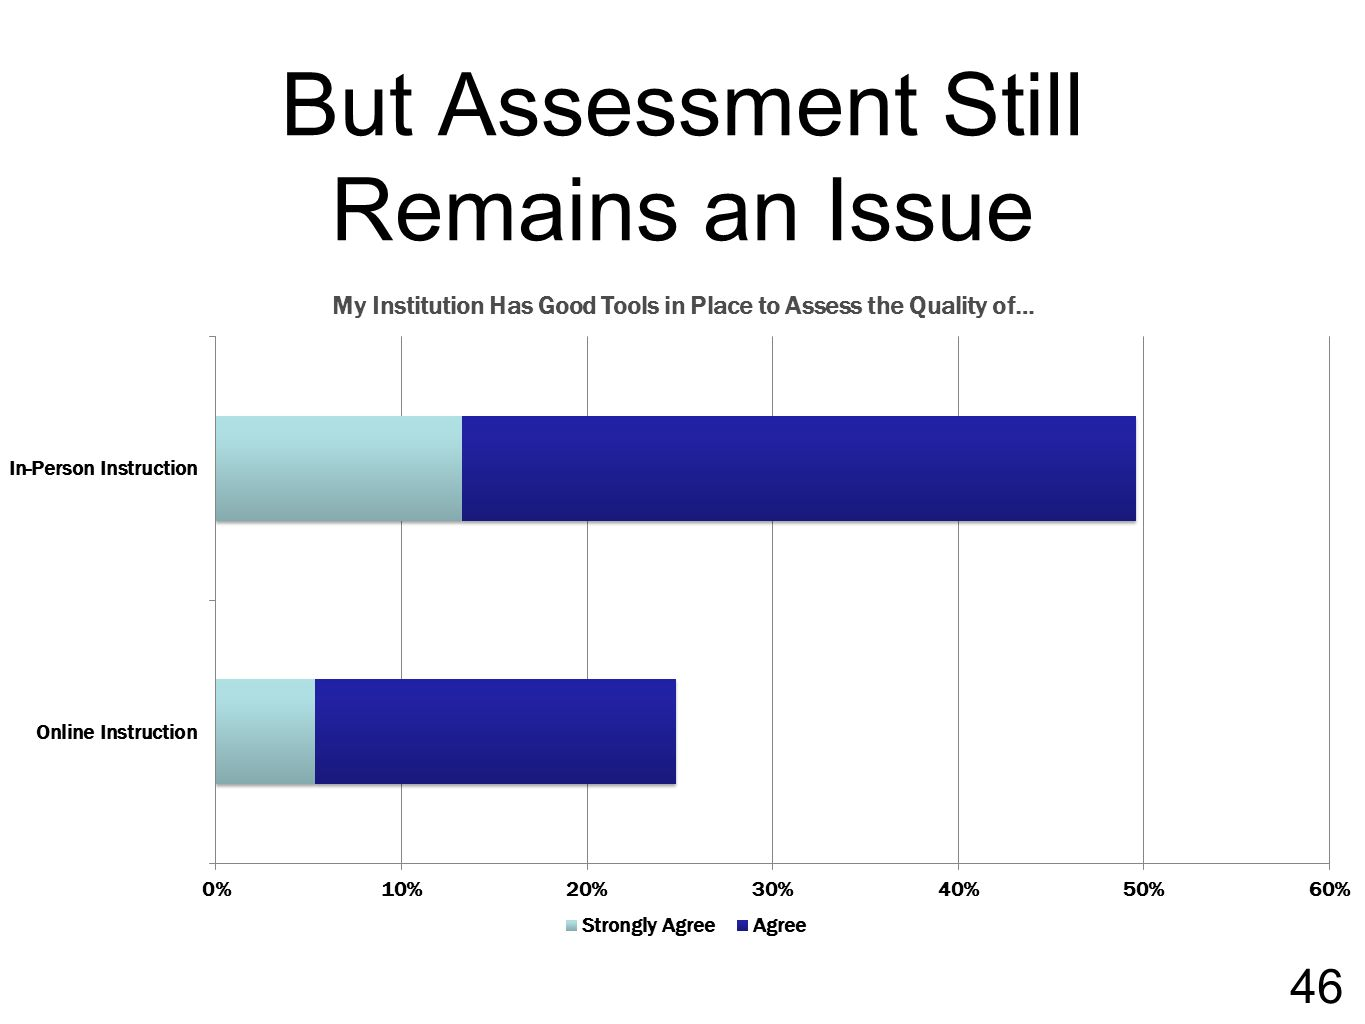 But Assessment Still Remains an Issue 46